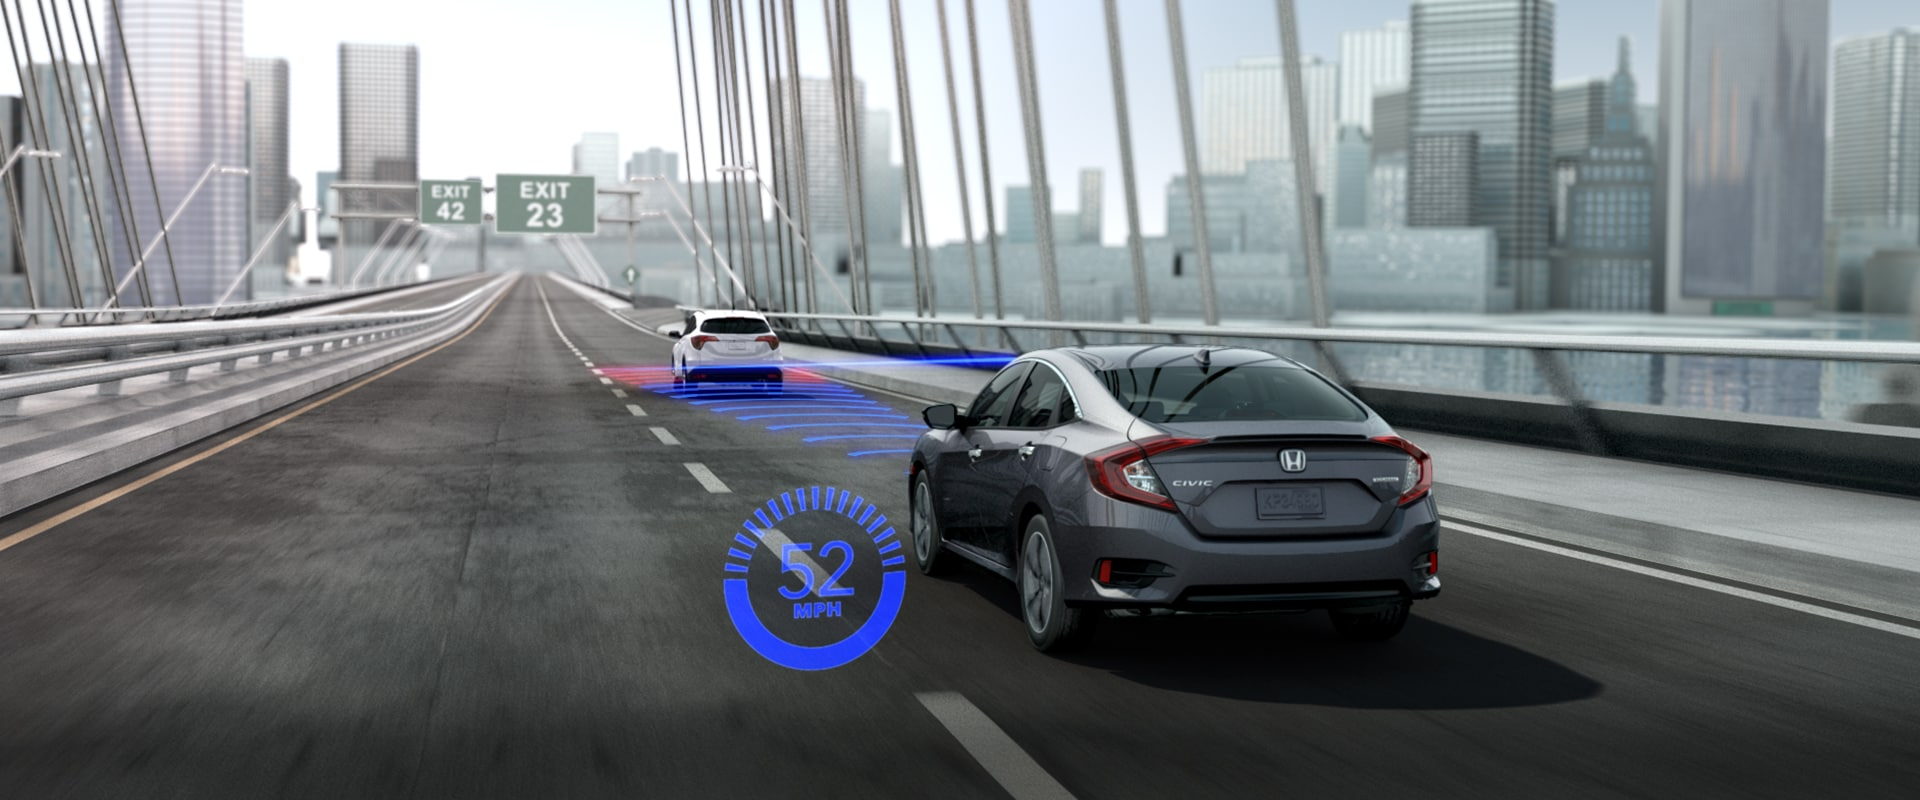 Cruise Control Should Not Be Used >> How To Use Honda Adaptive Cruise Control Blog Detail